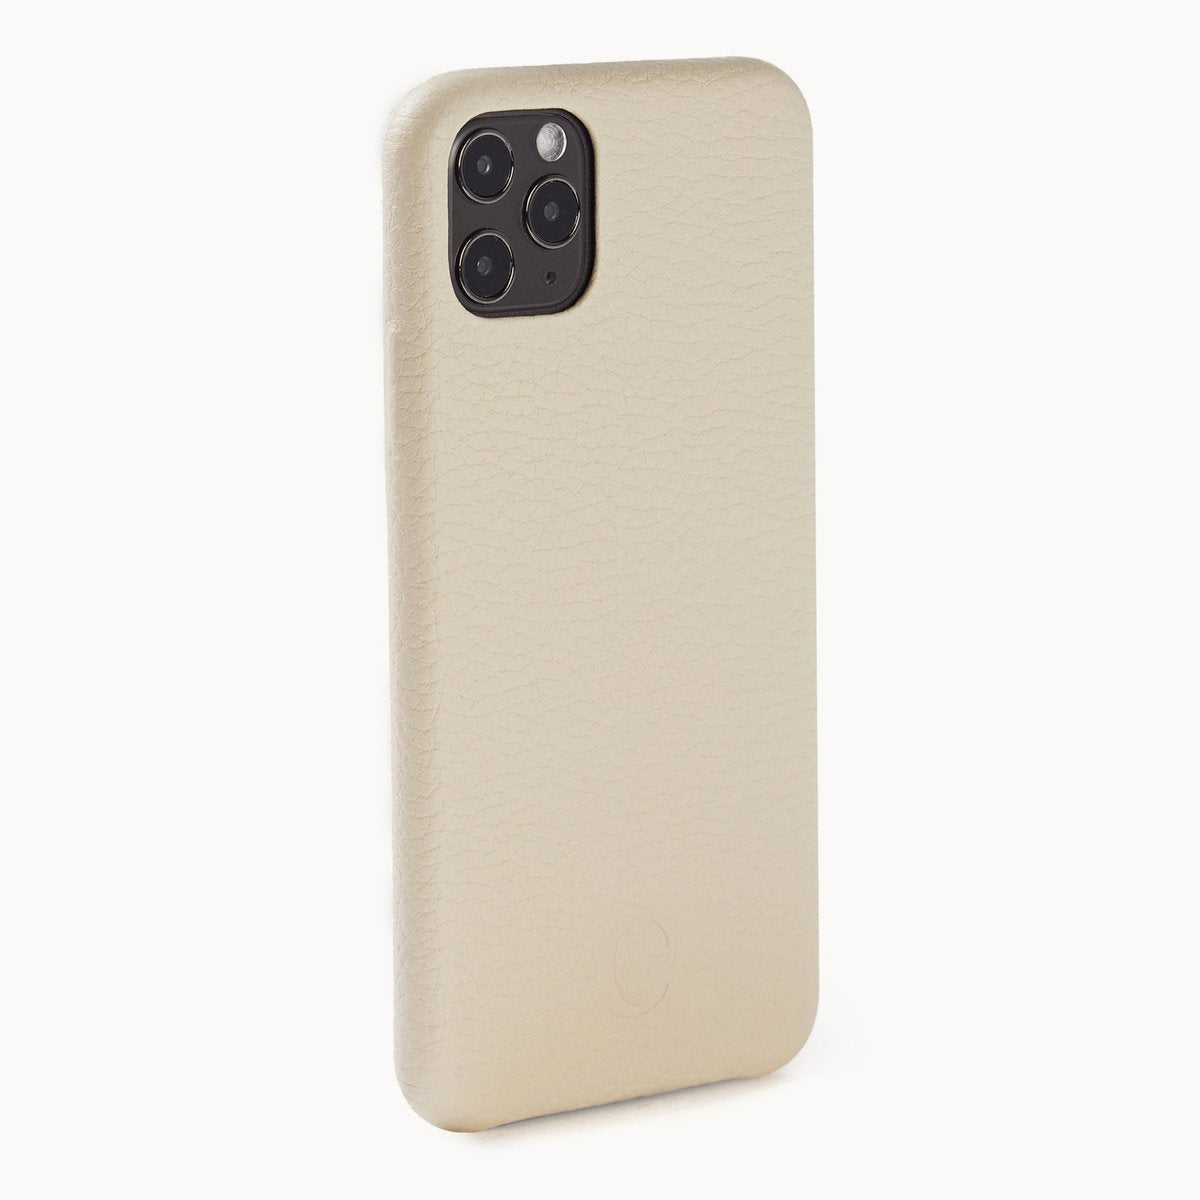 IPHONE 11 PRO MAX ANTIMICROBIAL CASE